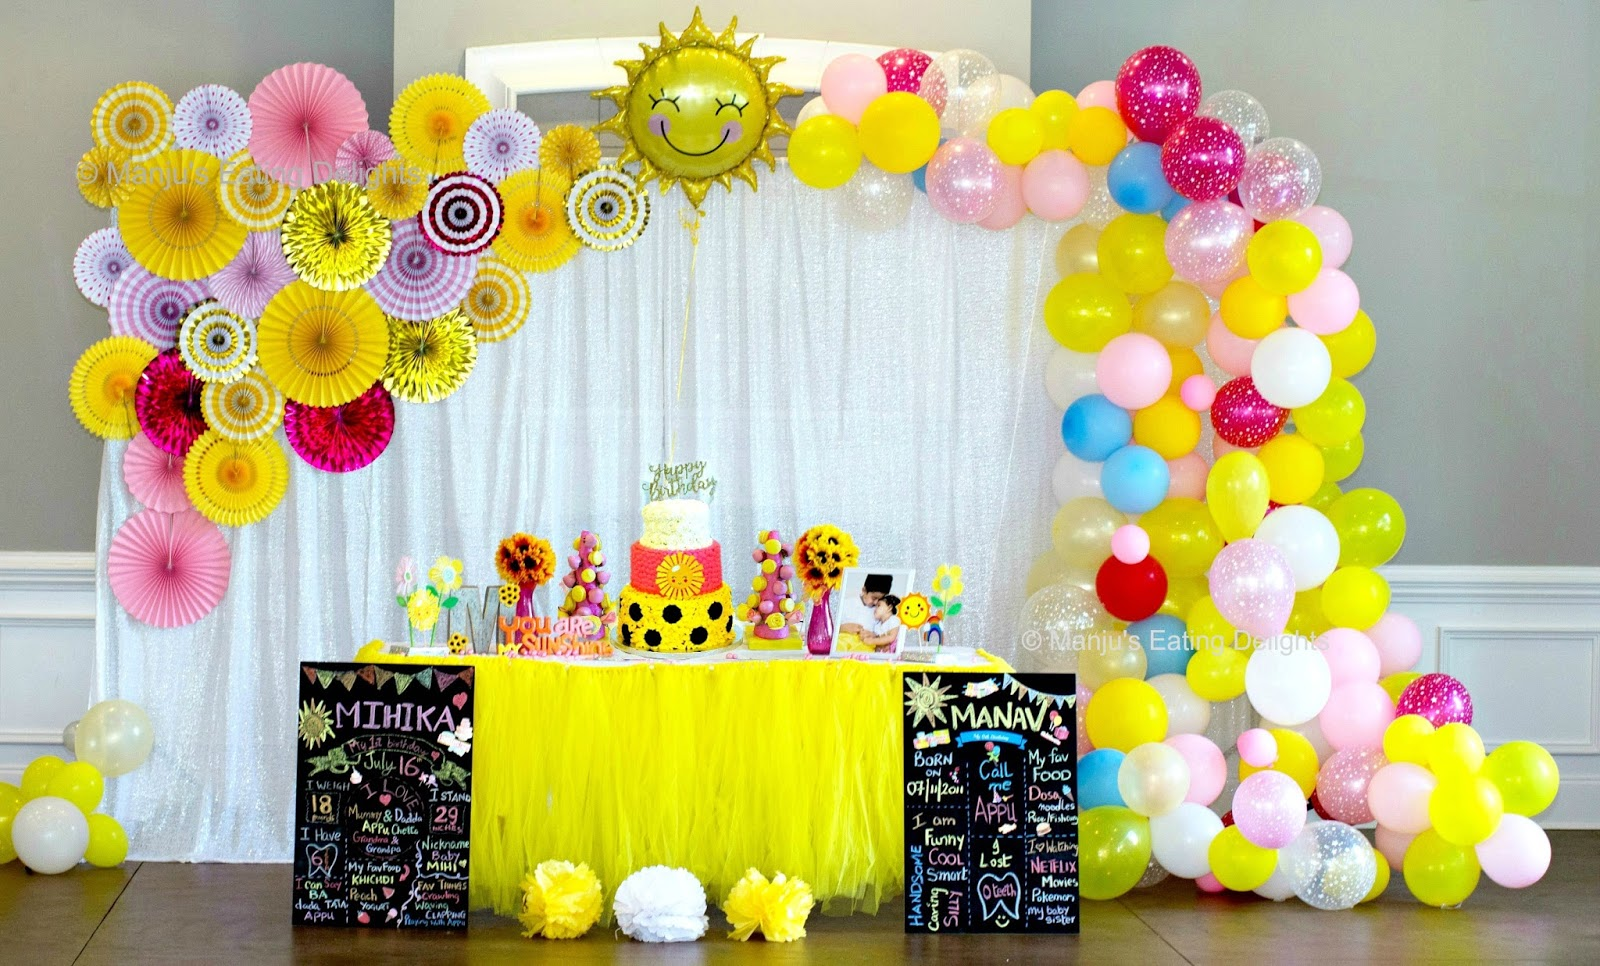 Manju S Eating Delights You Are My Sunshine Themed Birthday Mihika Turns 1 And Manav Turns 6